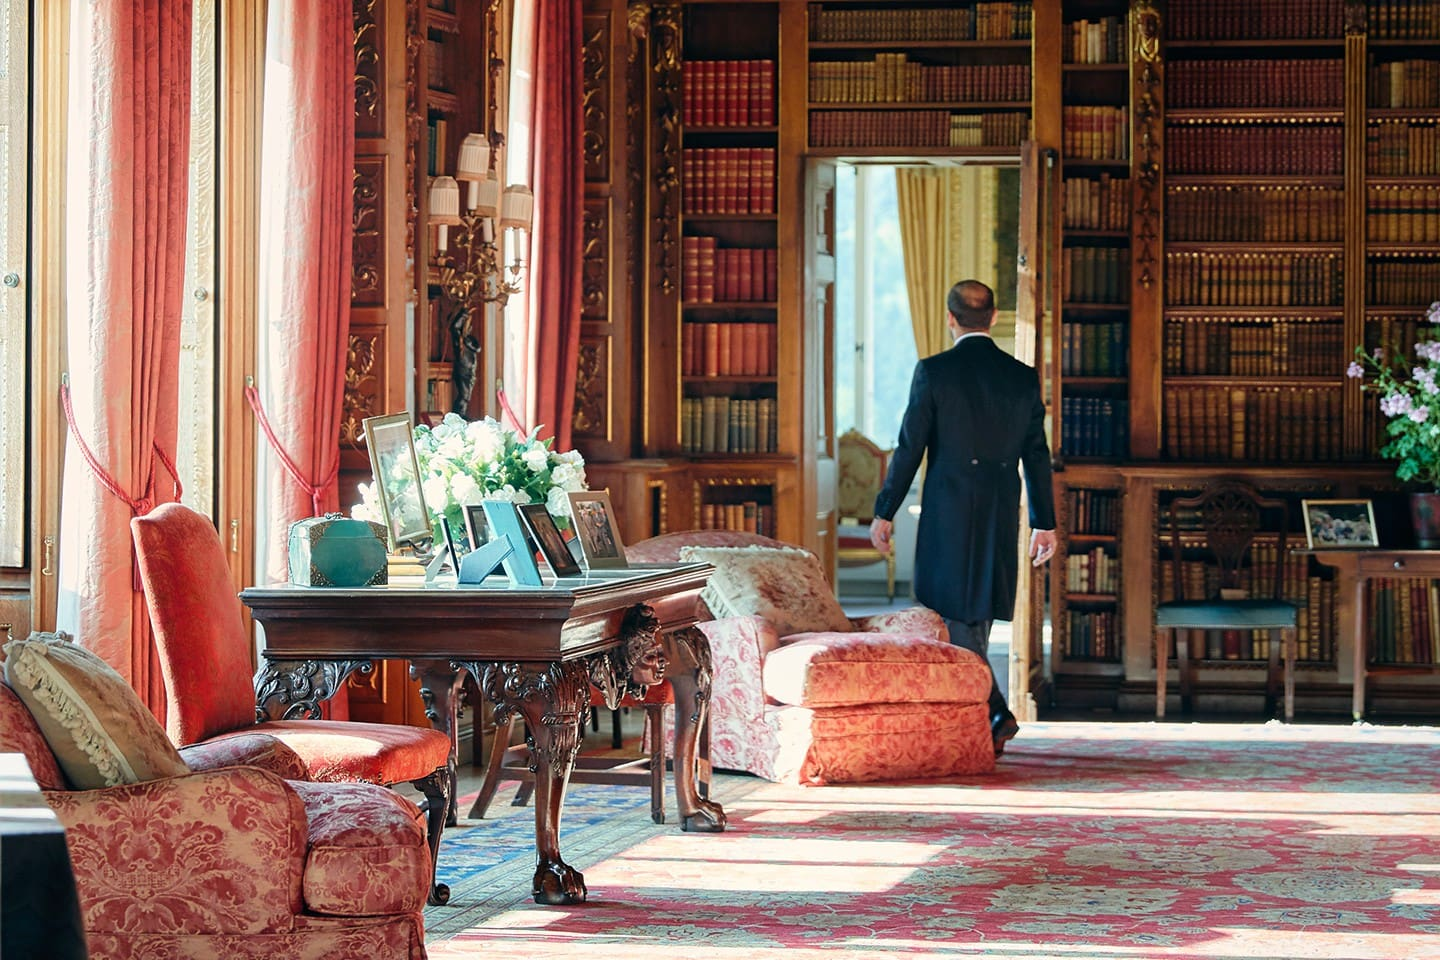 Enjoy a private tour of Highclere Castle and its extensive grounds